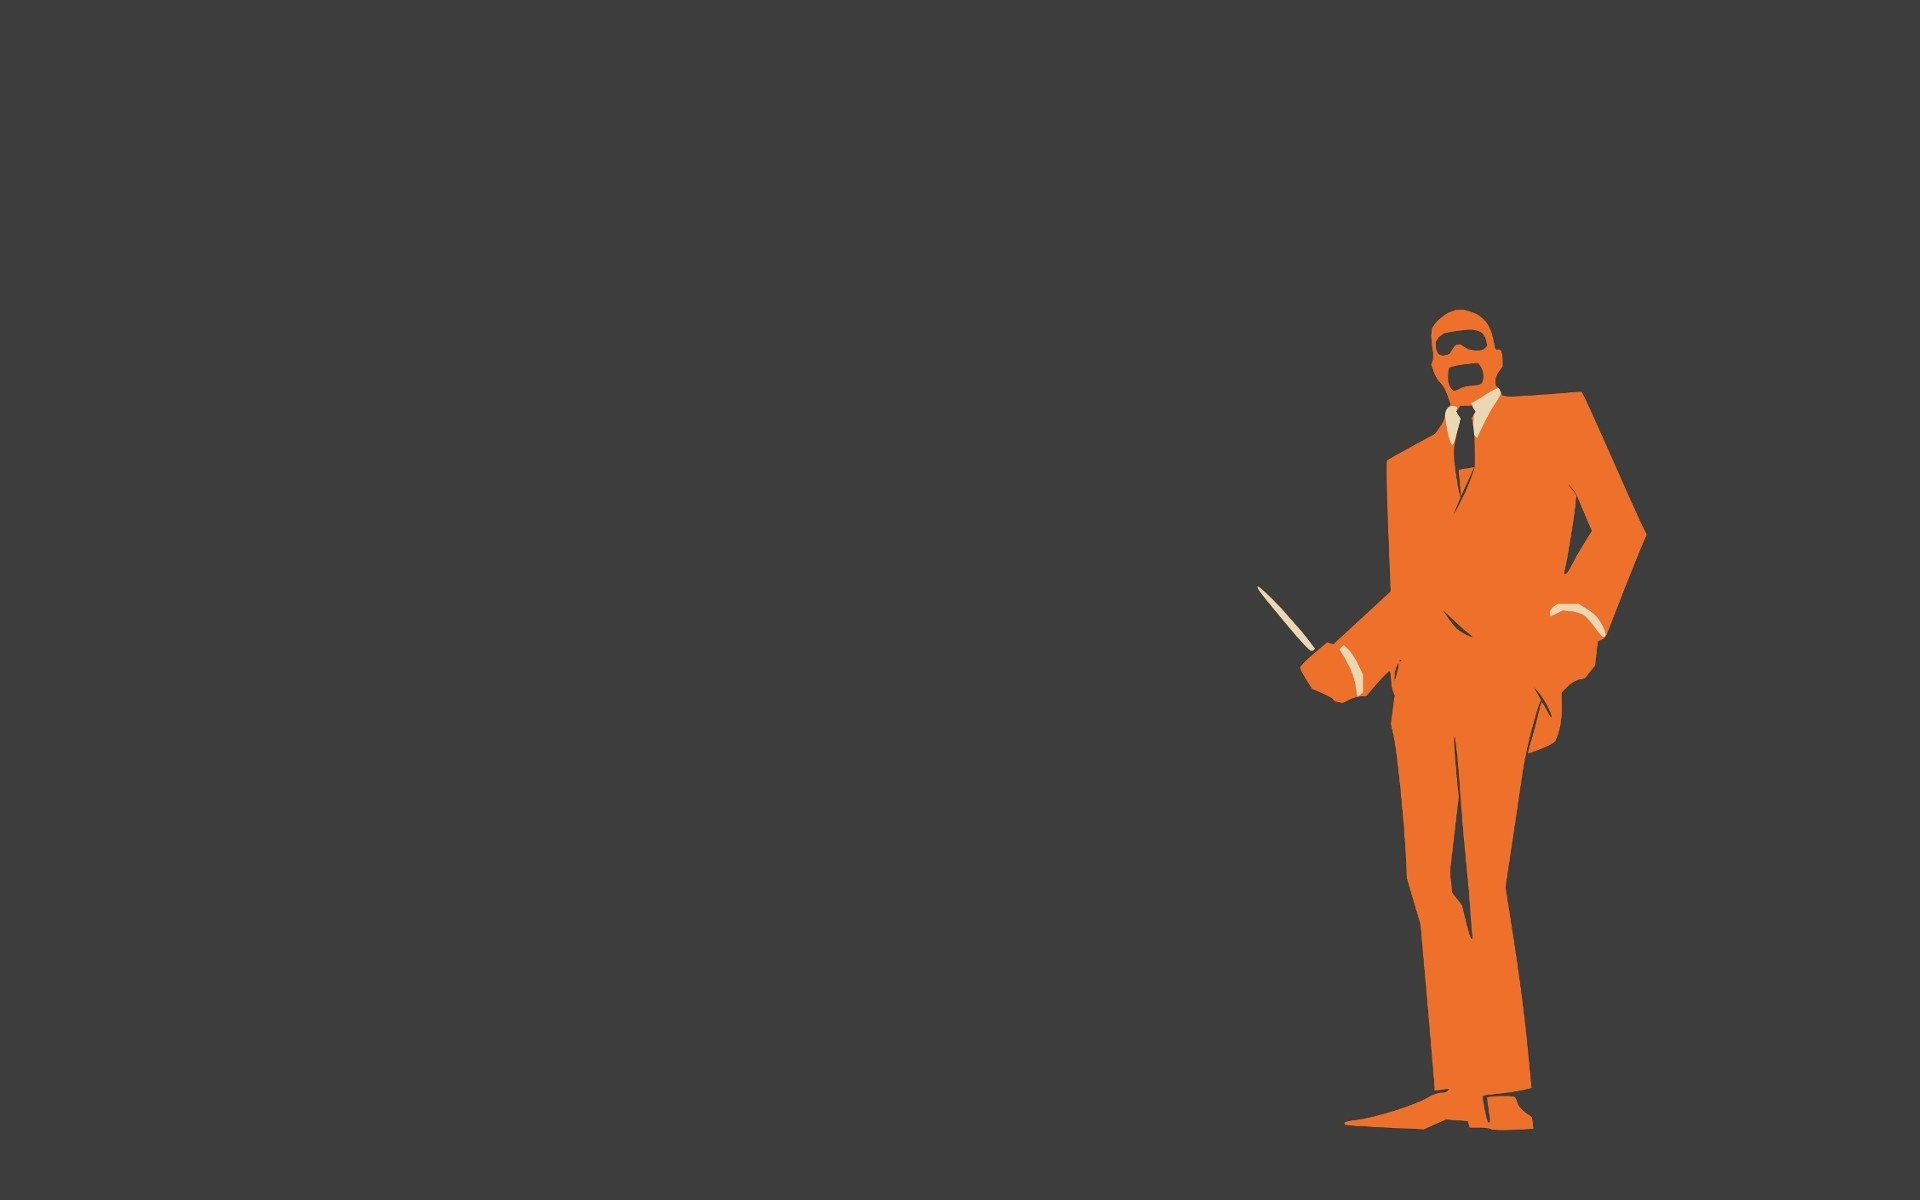 Team Fortress Spy Wallpapers Wallpaper · Team Fortress 2